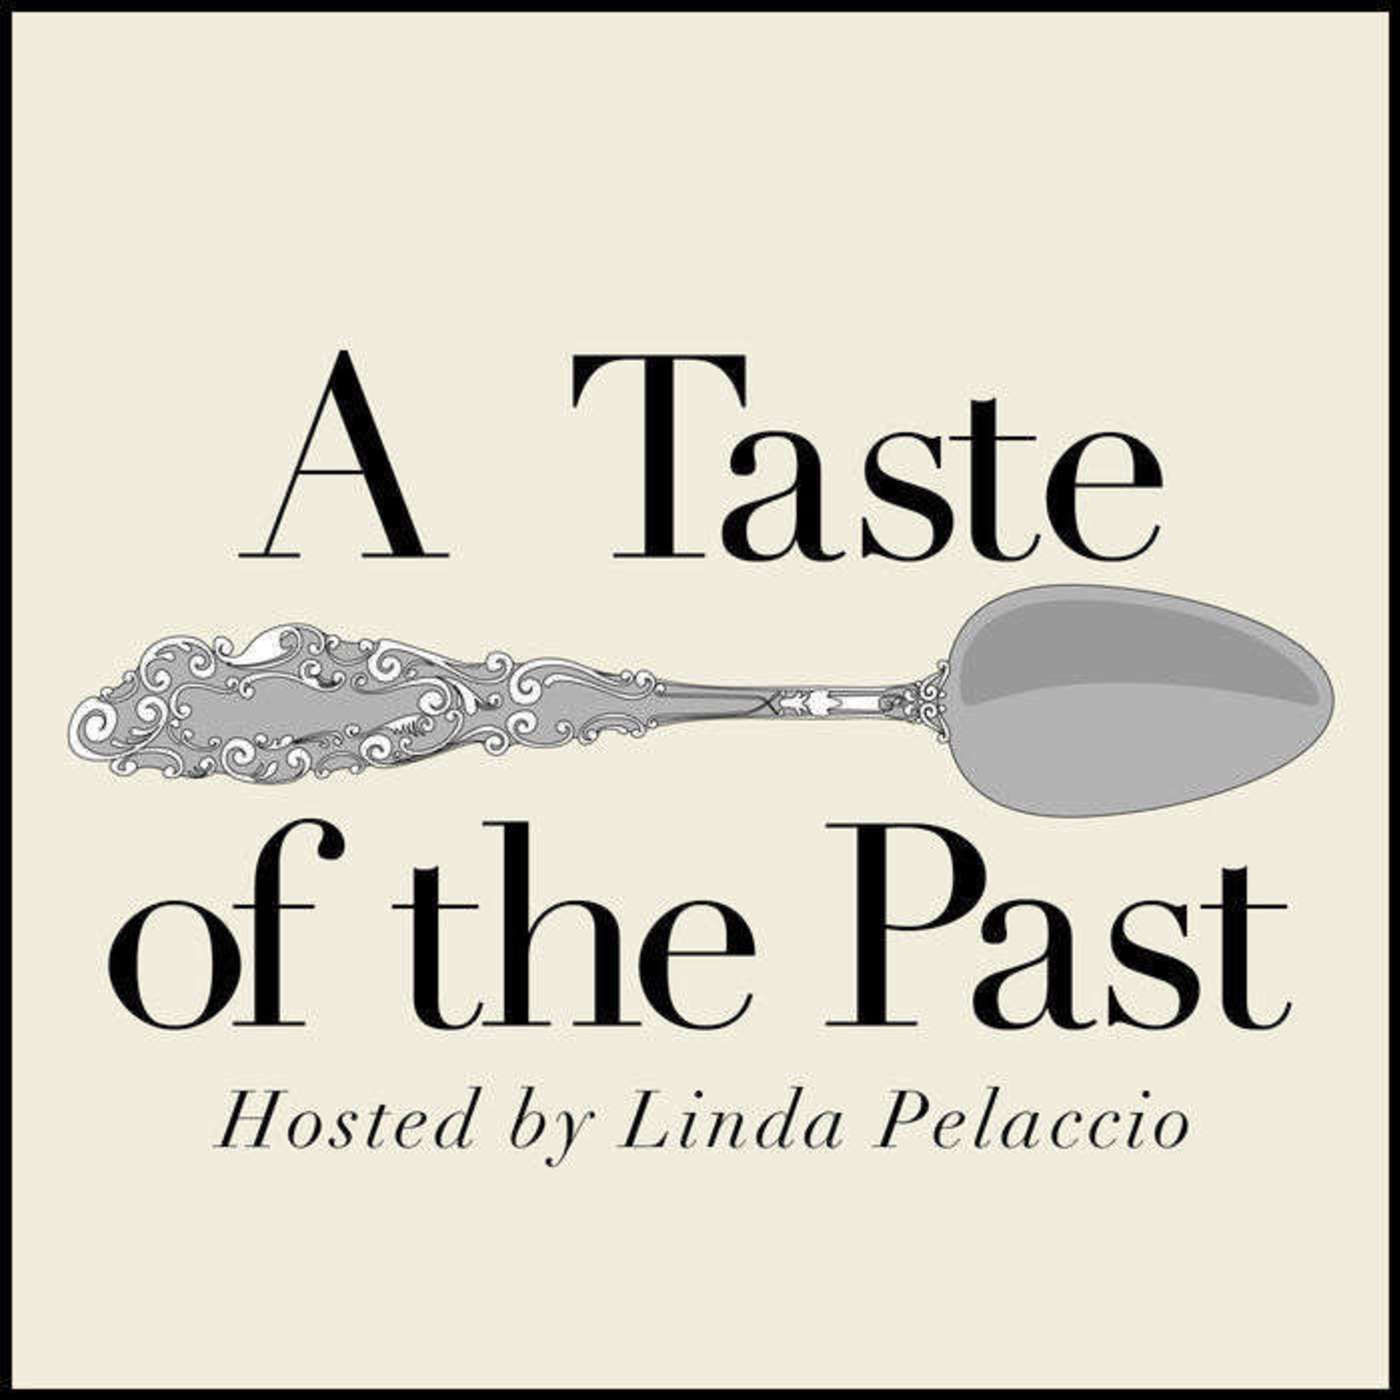 Episode 51: Secrets from the White House Kitchens